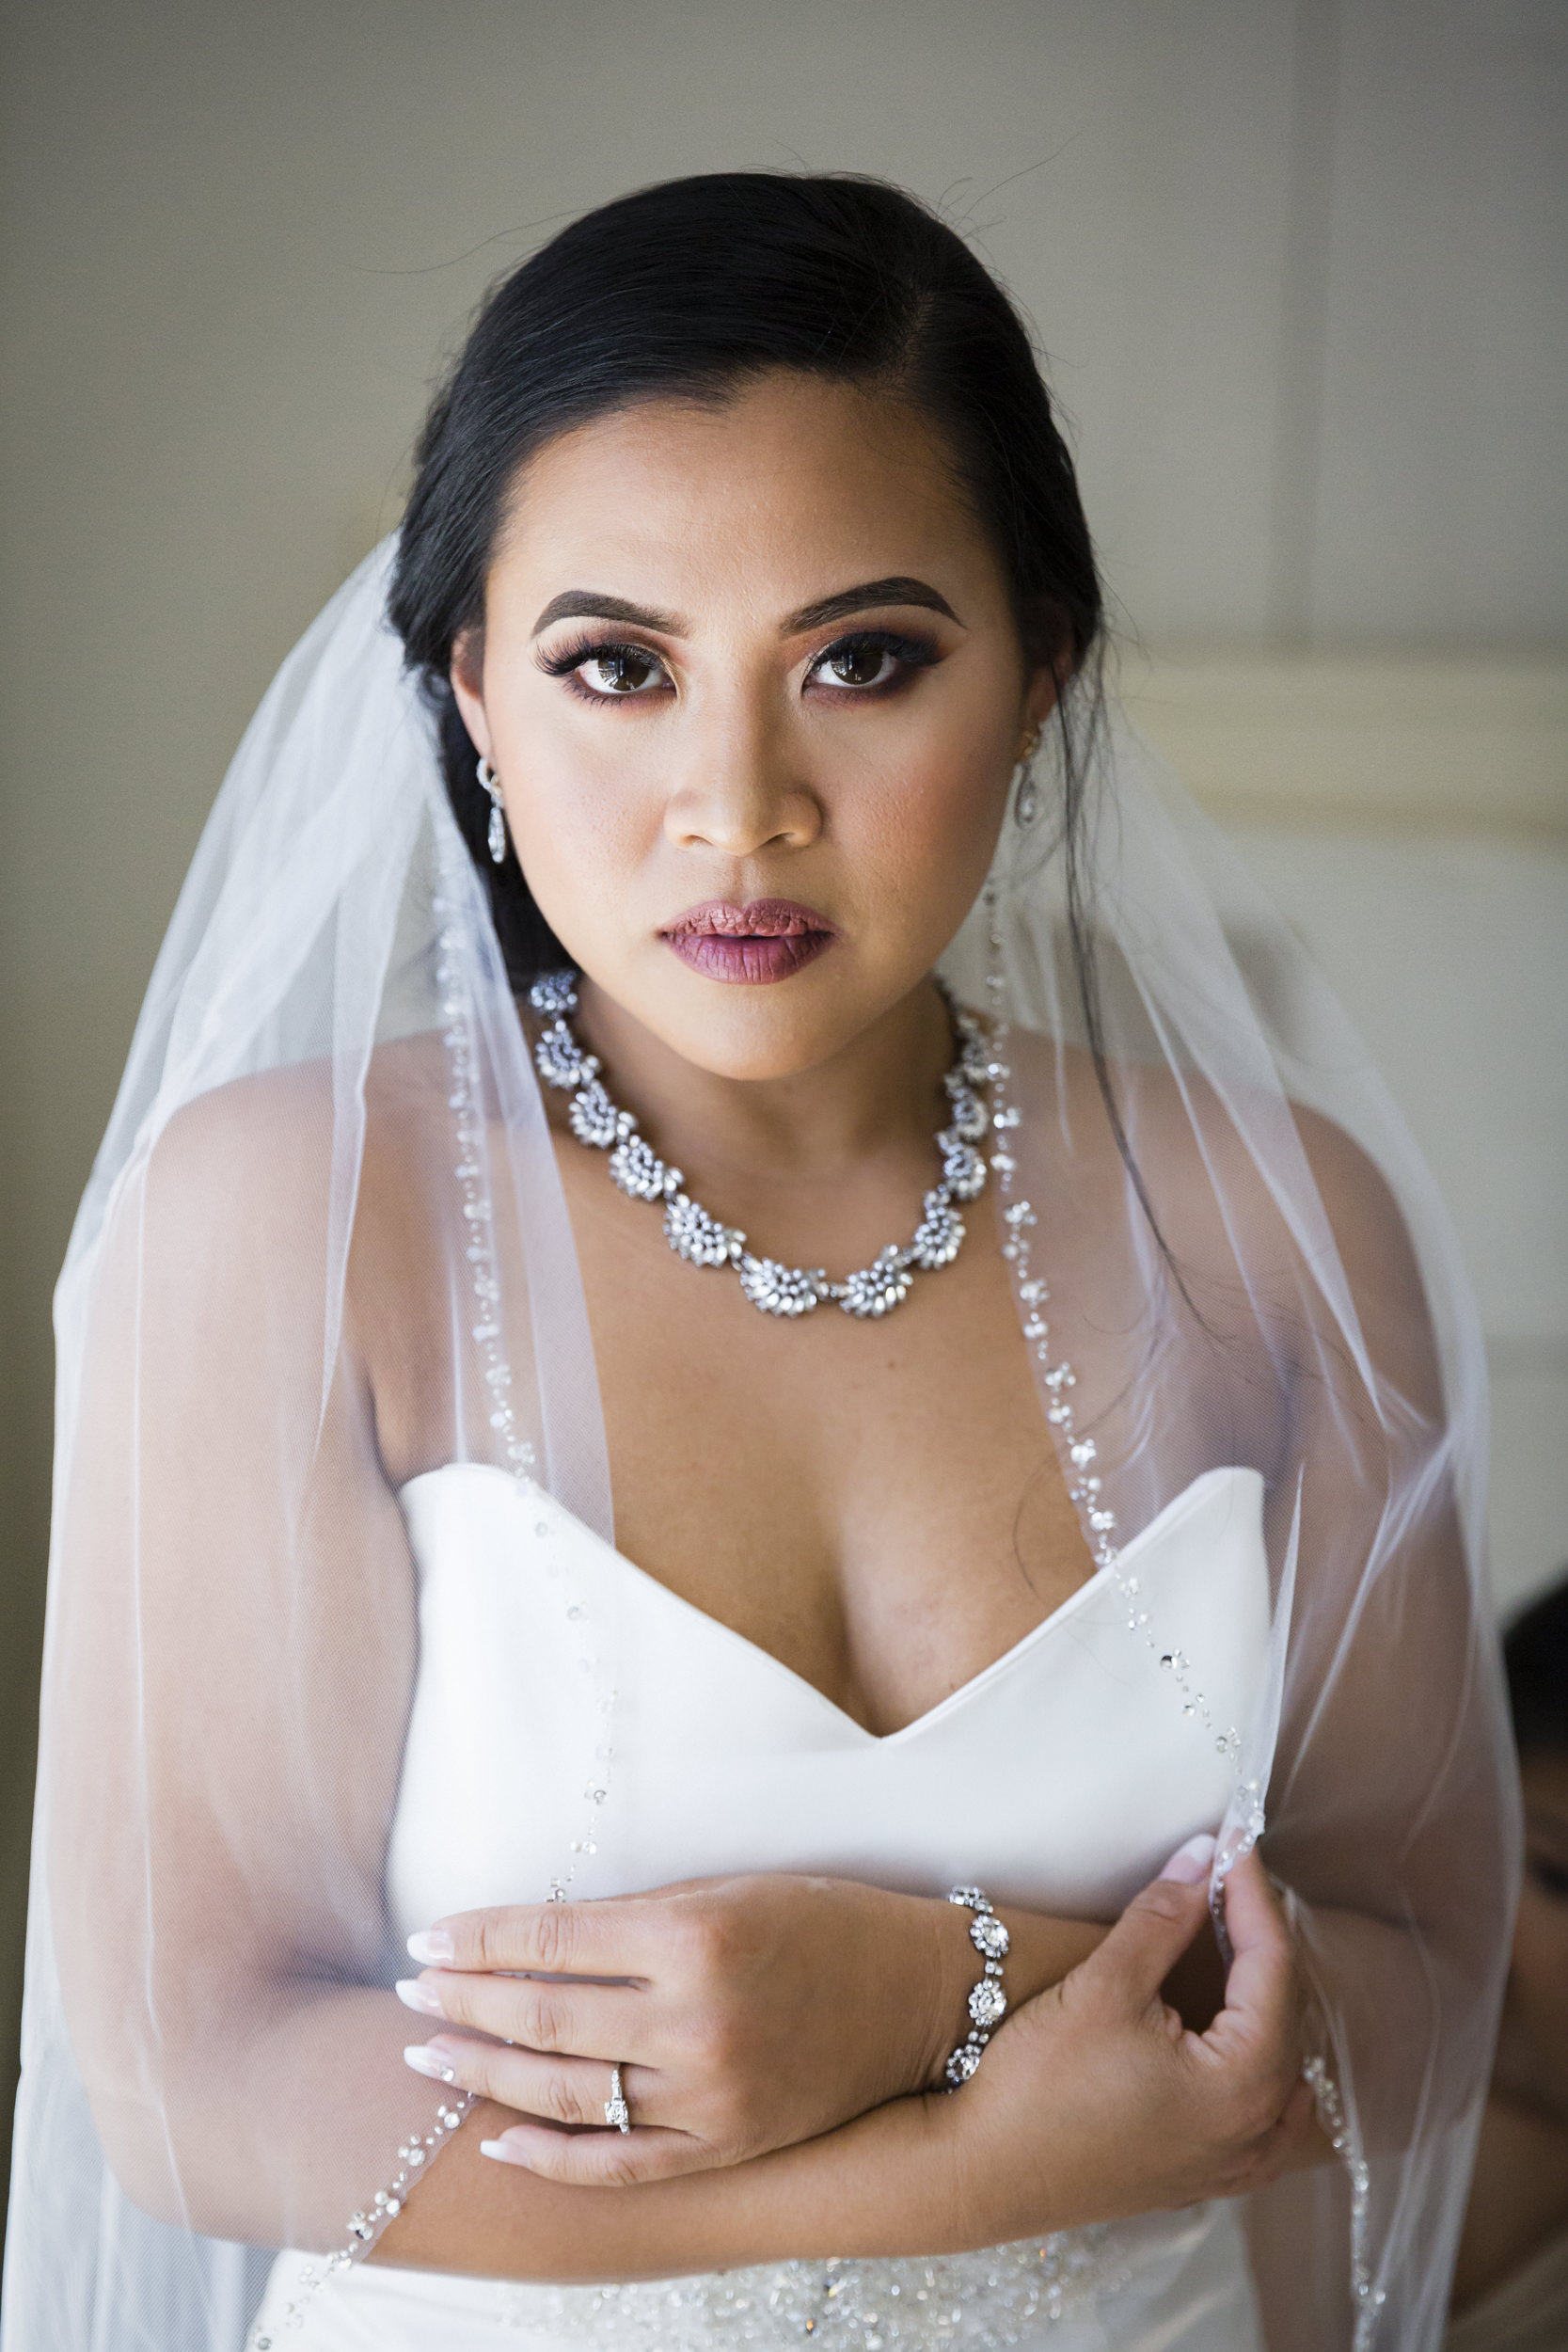 bridal-portrait-bride-wedding-day-4.jpg